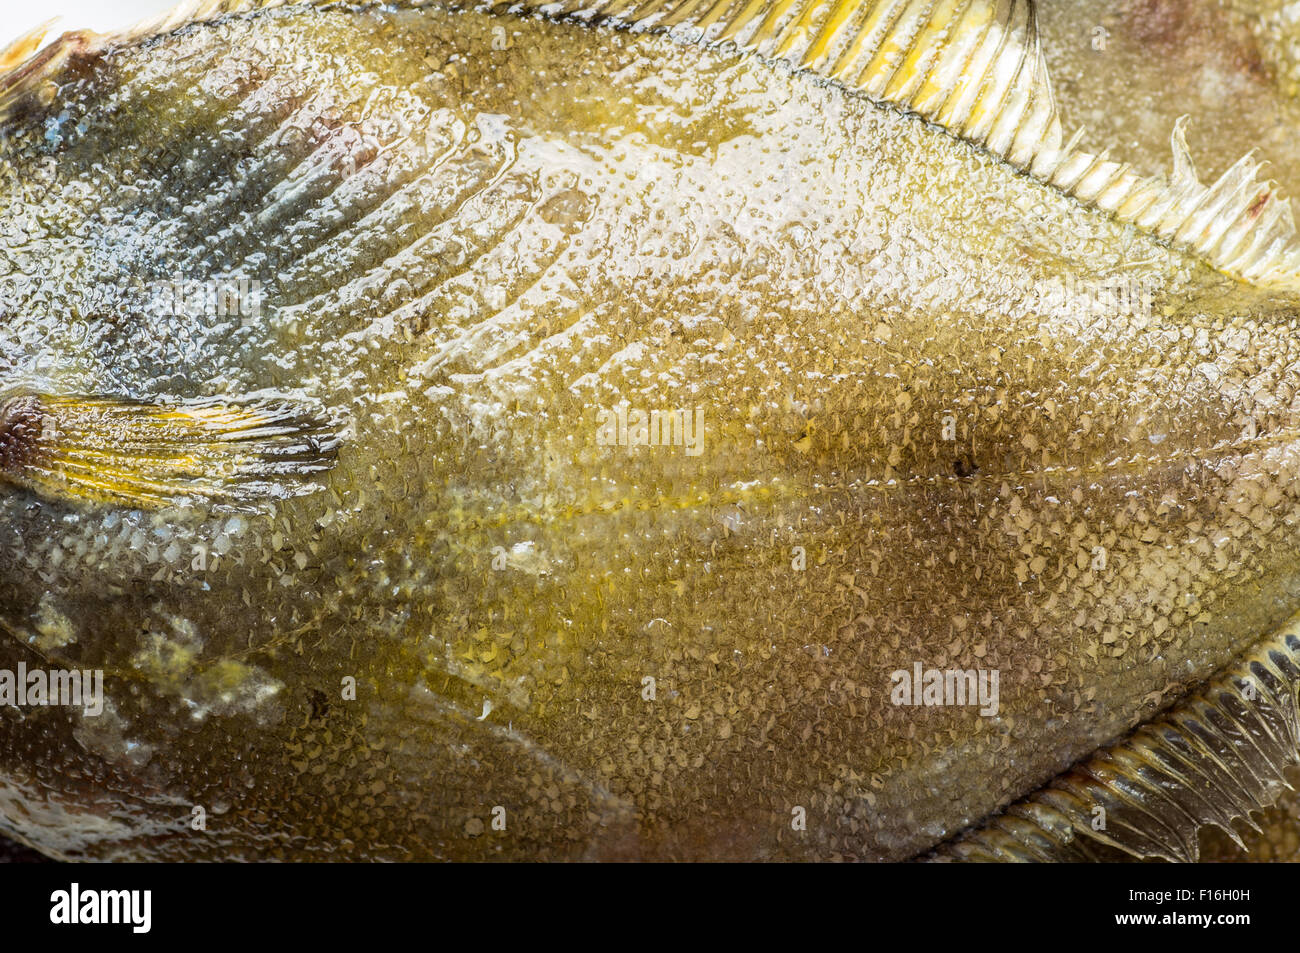 Close up of the body of fresh flatfish top view - Stock Image